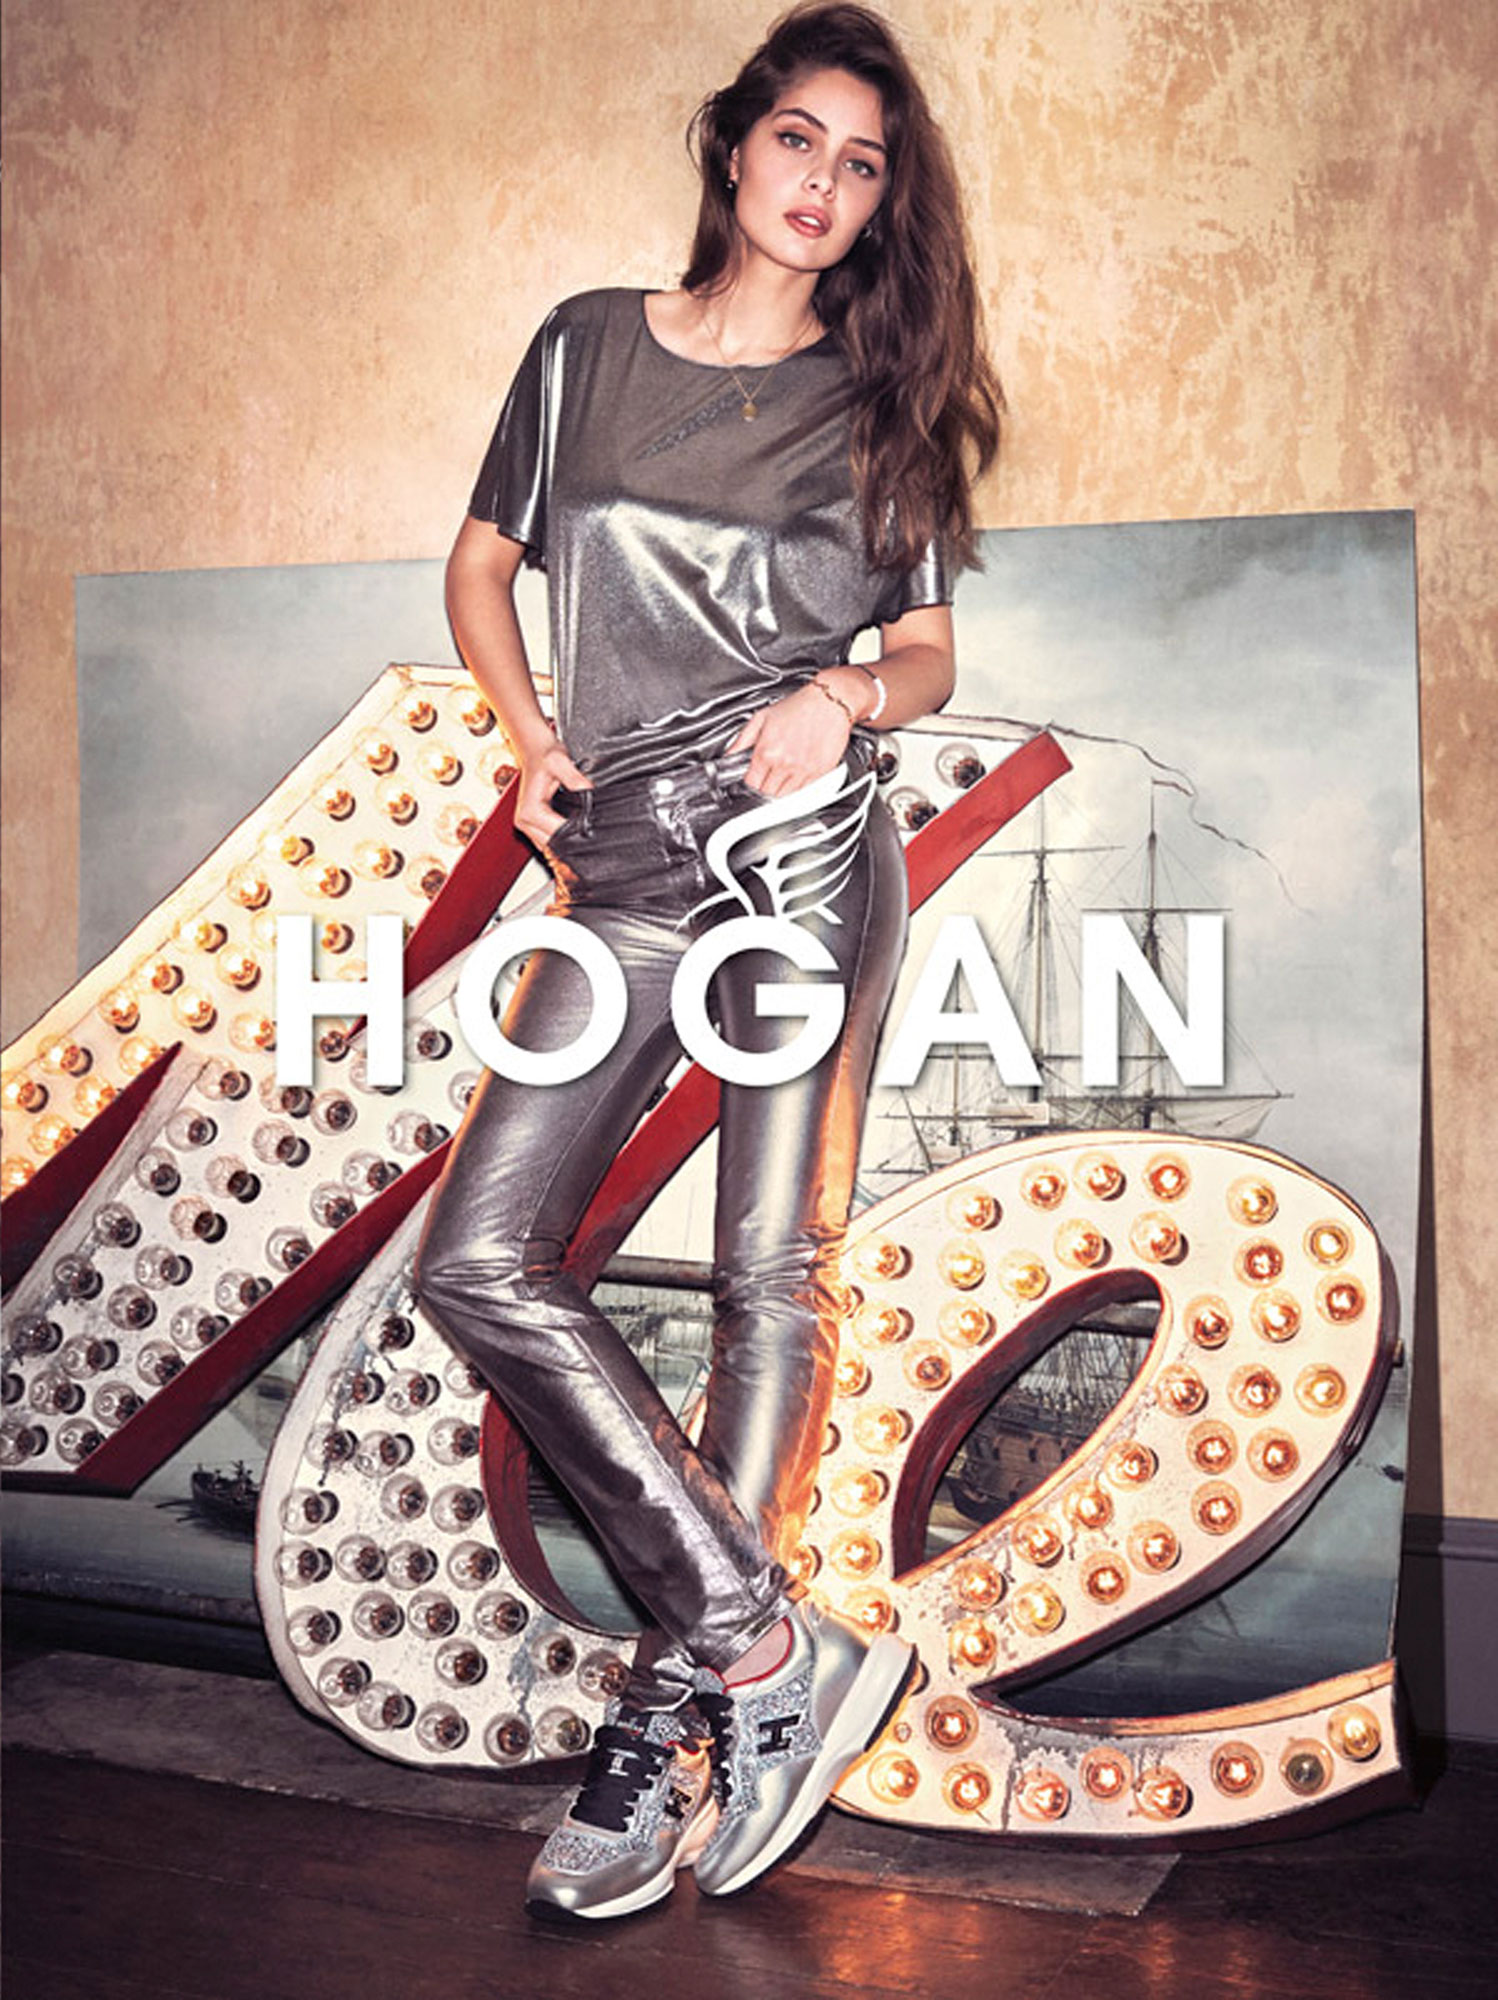 Hogan Campaign SS 2016 | Michelangelo di Battista | Hogan | Numerique Retouch Photo Retouching Studio